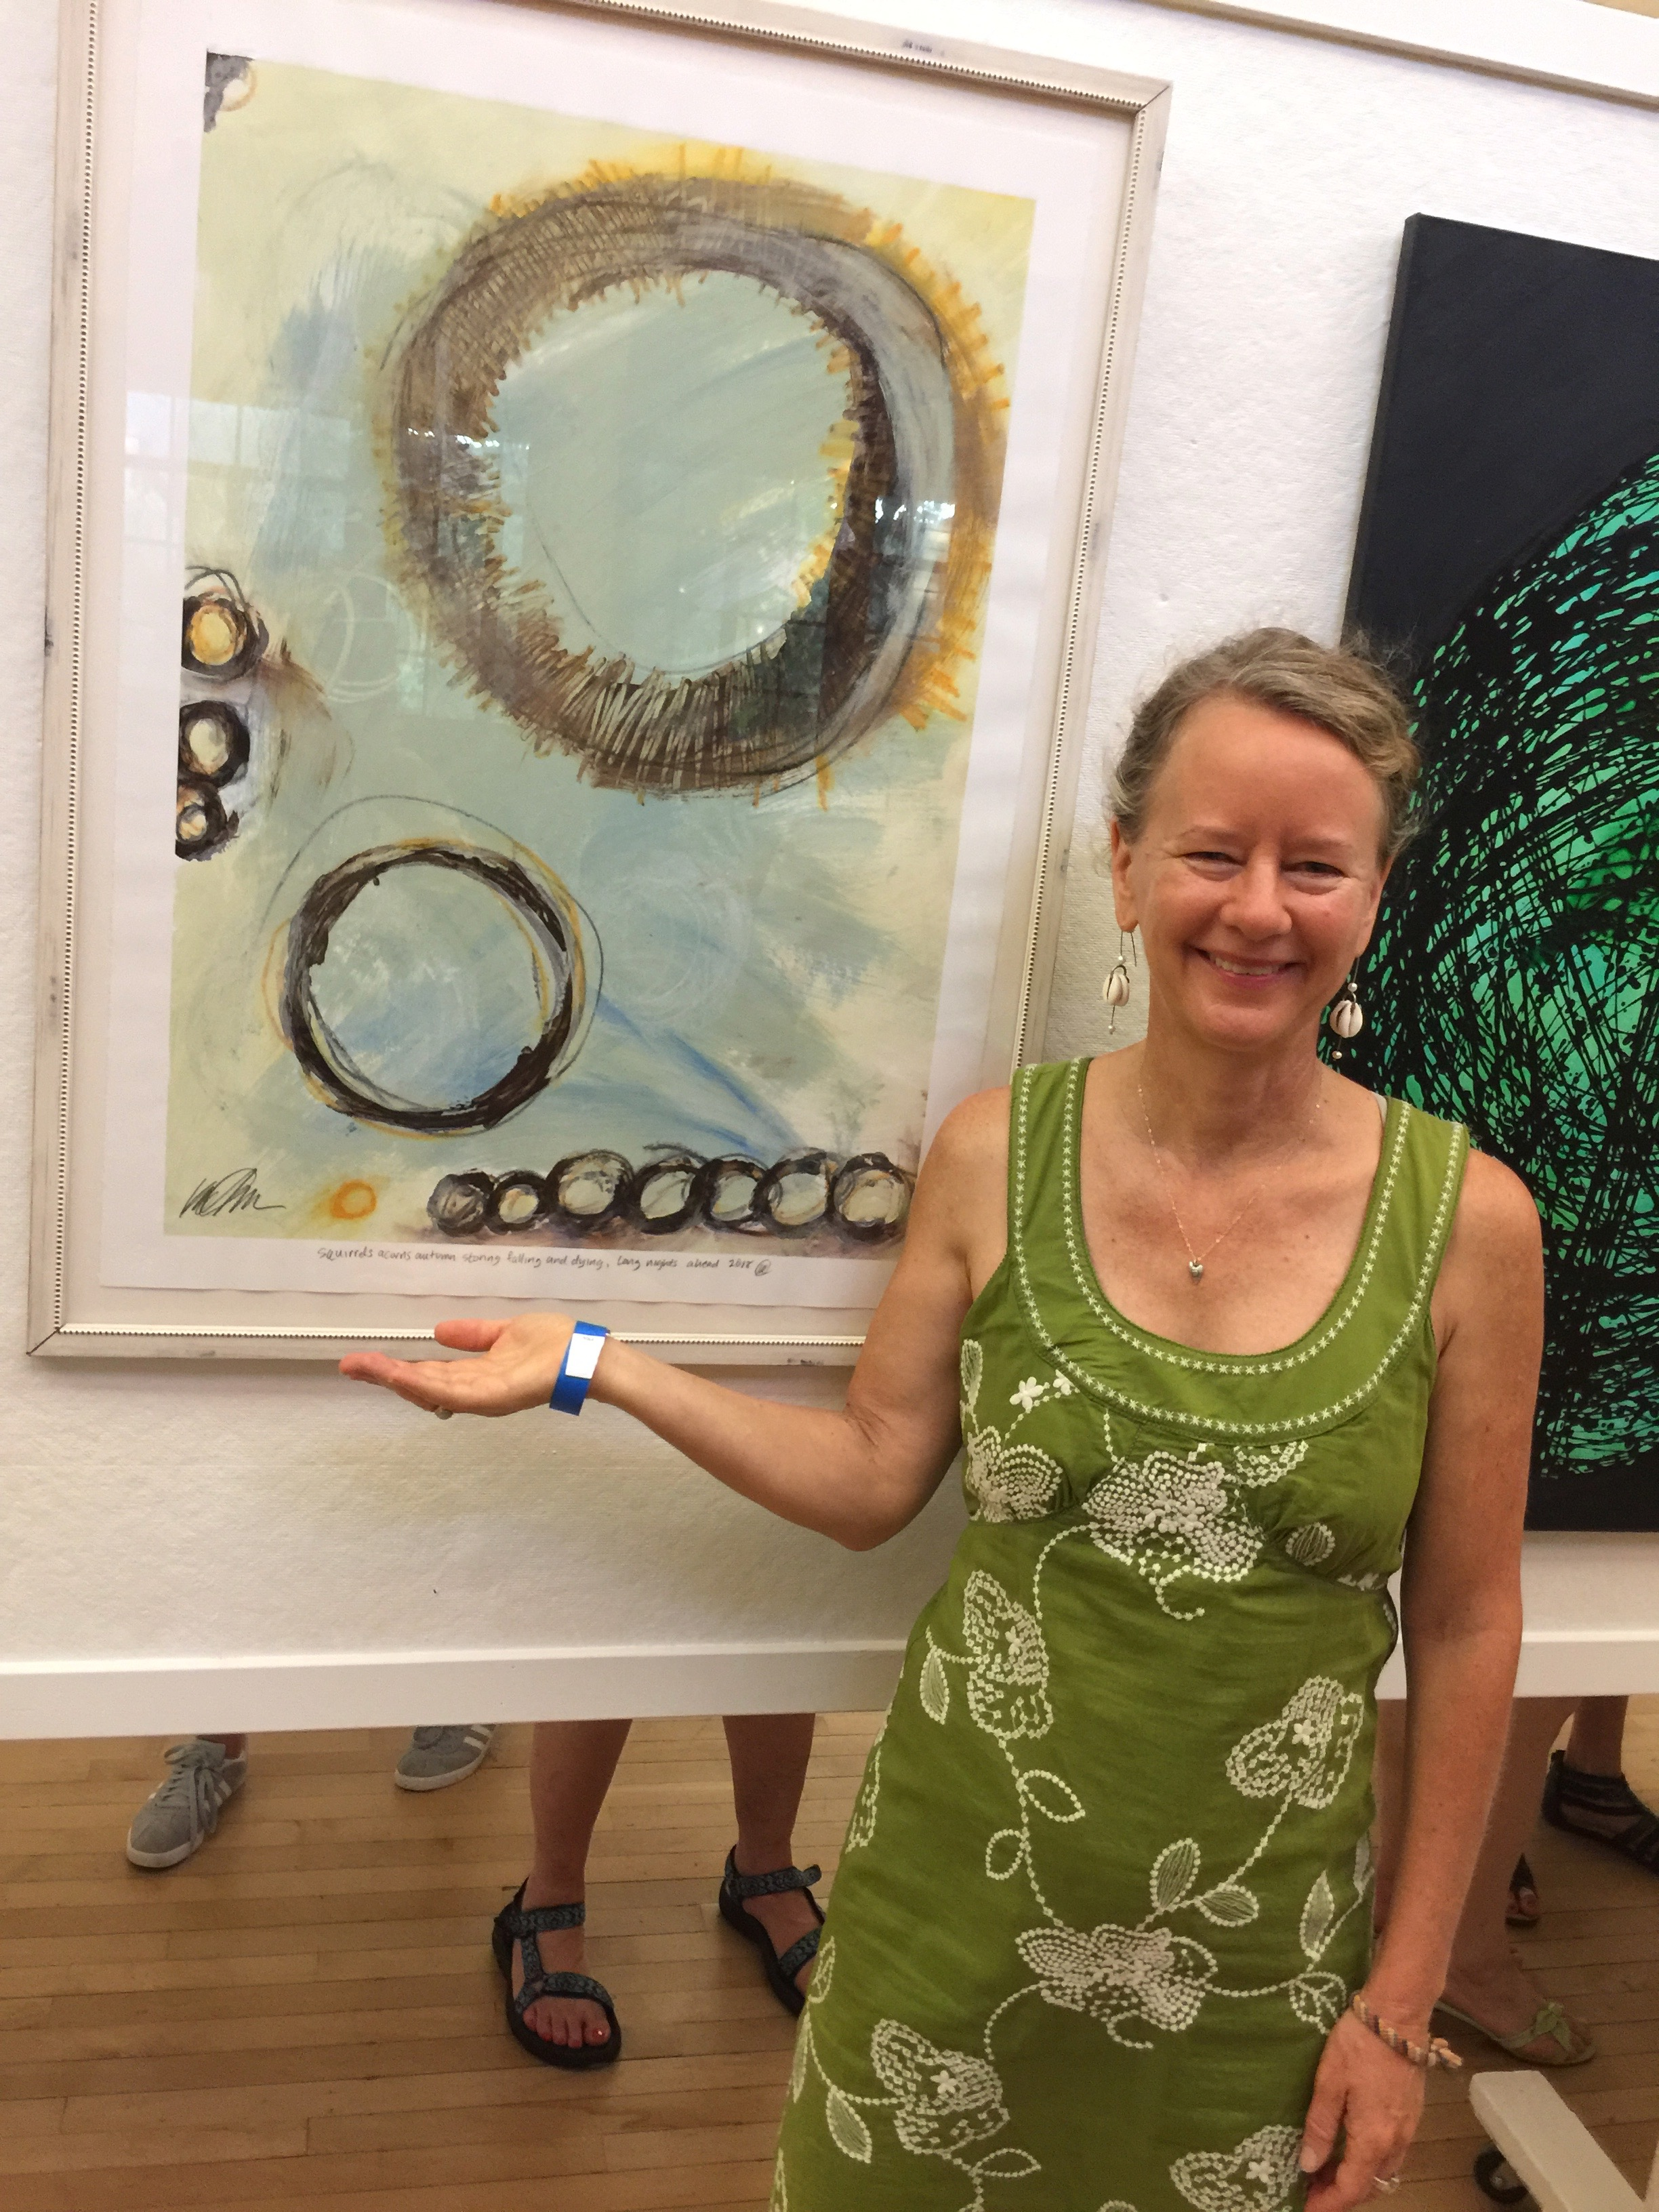 Karin Edgett in front of 'squirrels, acorns and fall, storing, falling and dying, long nights ahead' - SOLD at the 2017 Glen Echo Labor Day Art Show